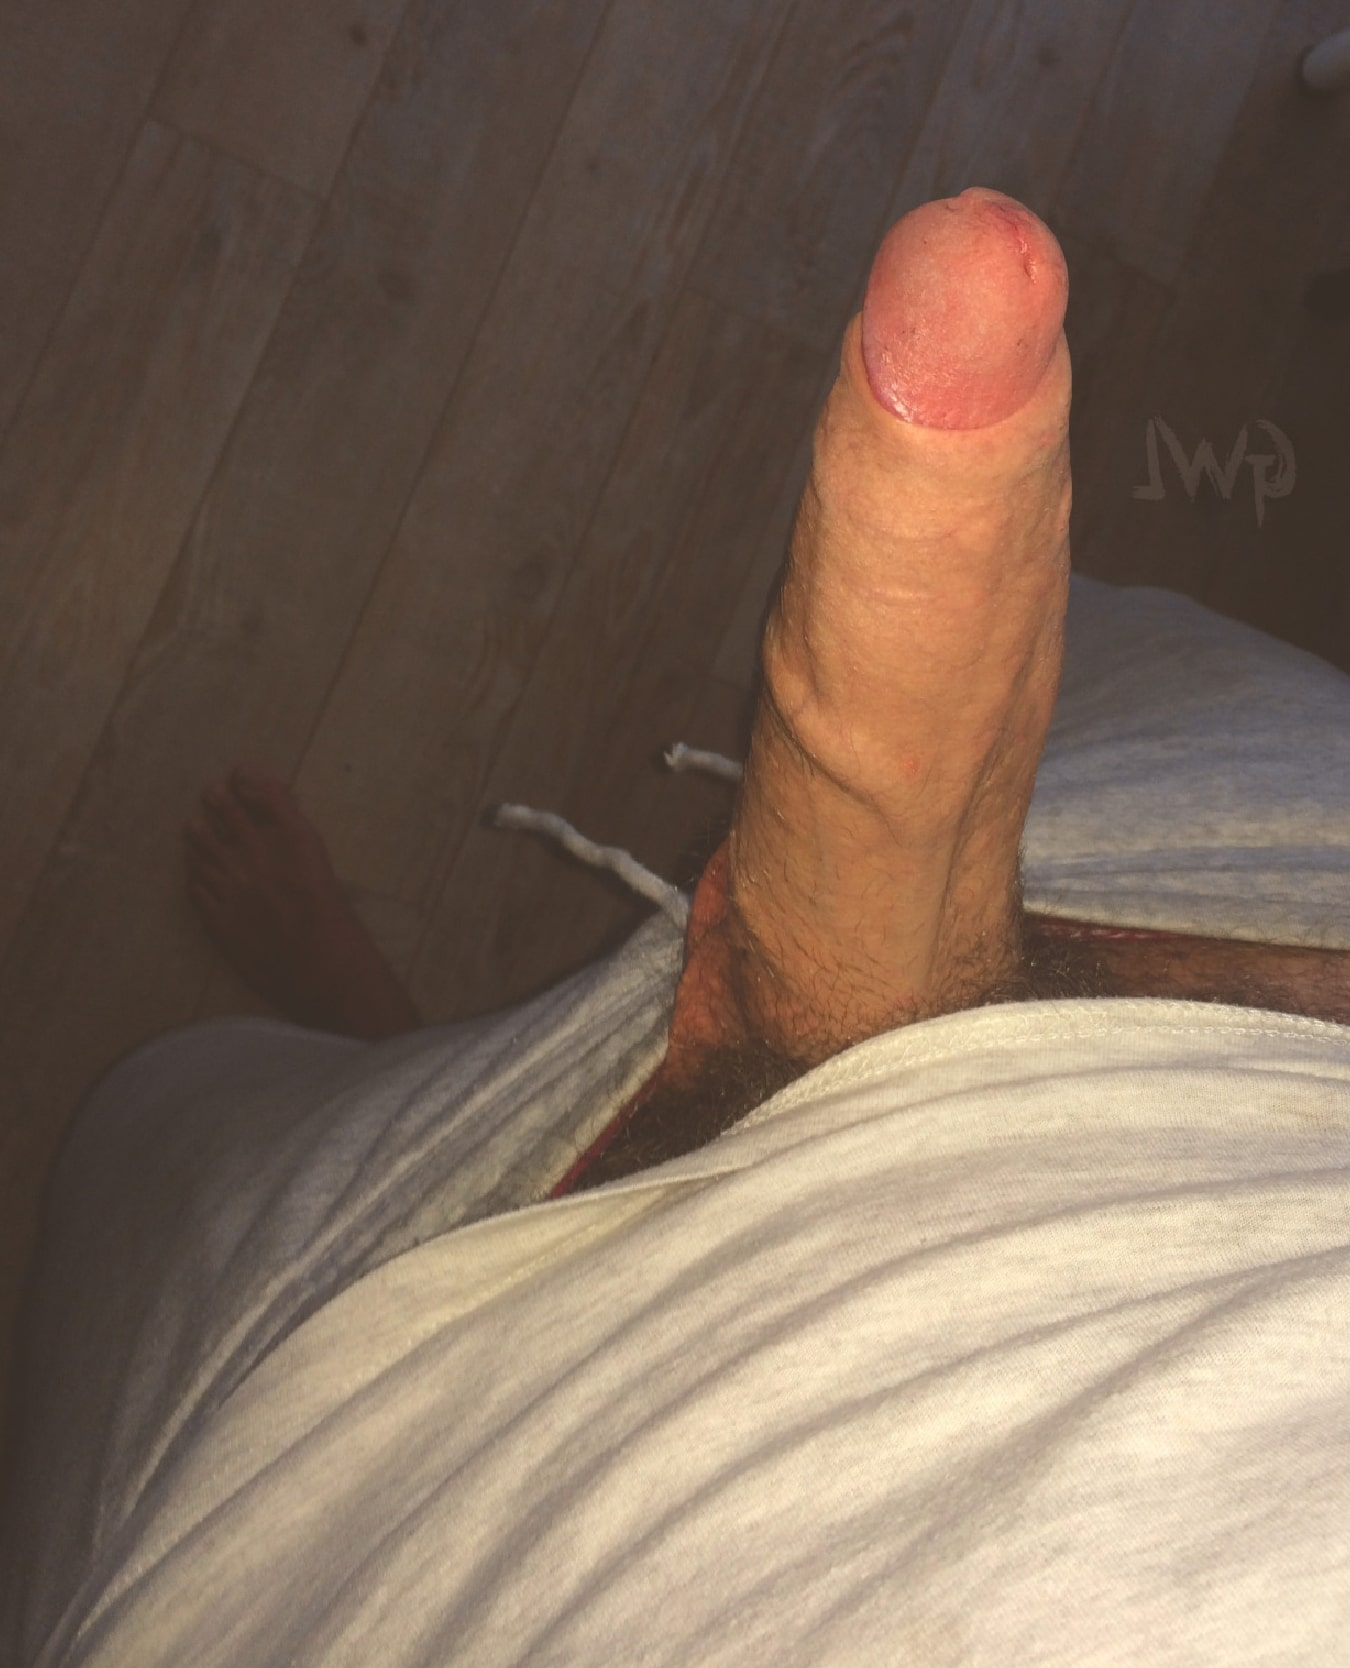 Horny Guy With His Shorts Pulled Down Take A Closeup Picture Of His Big Sexy Hard Uncut Cock